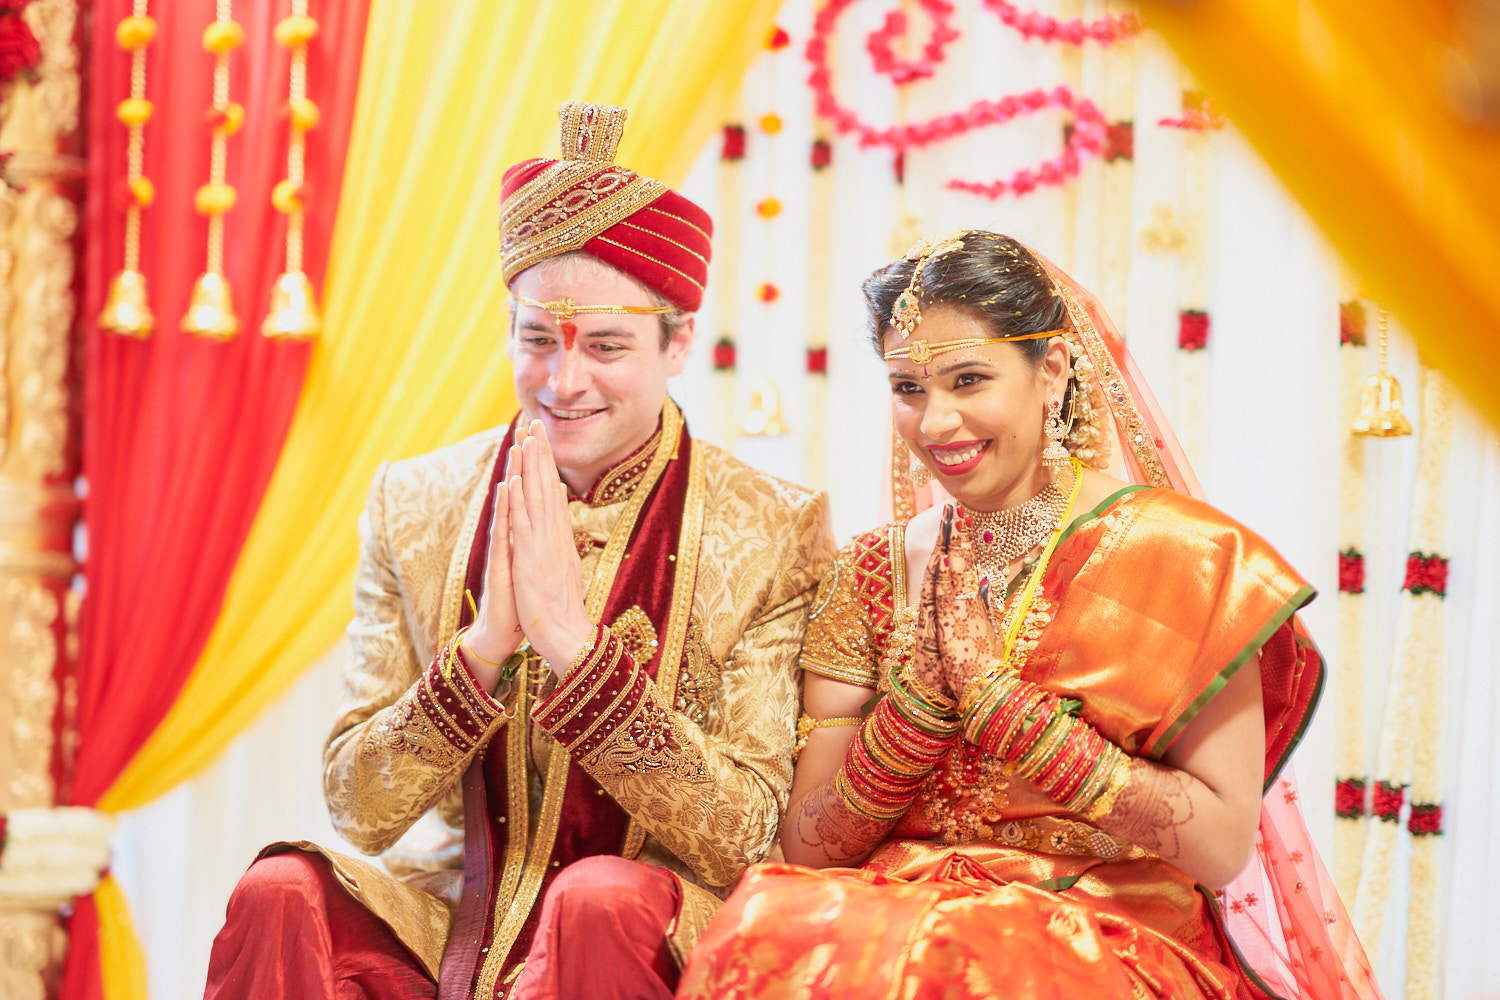 south-indian-wedding-ceremony-photography-by-afewgoodclicks-net-in-saratoga 235.jpg